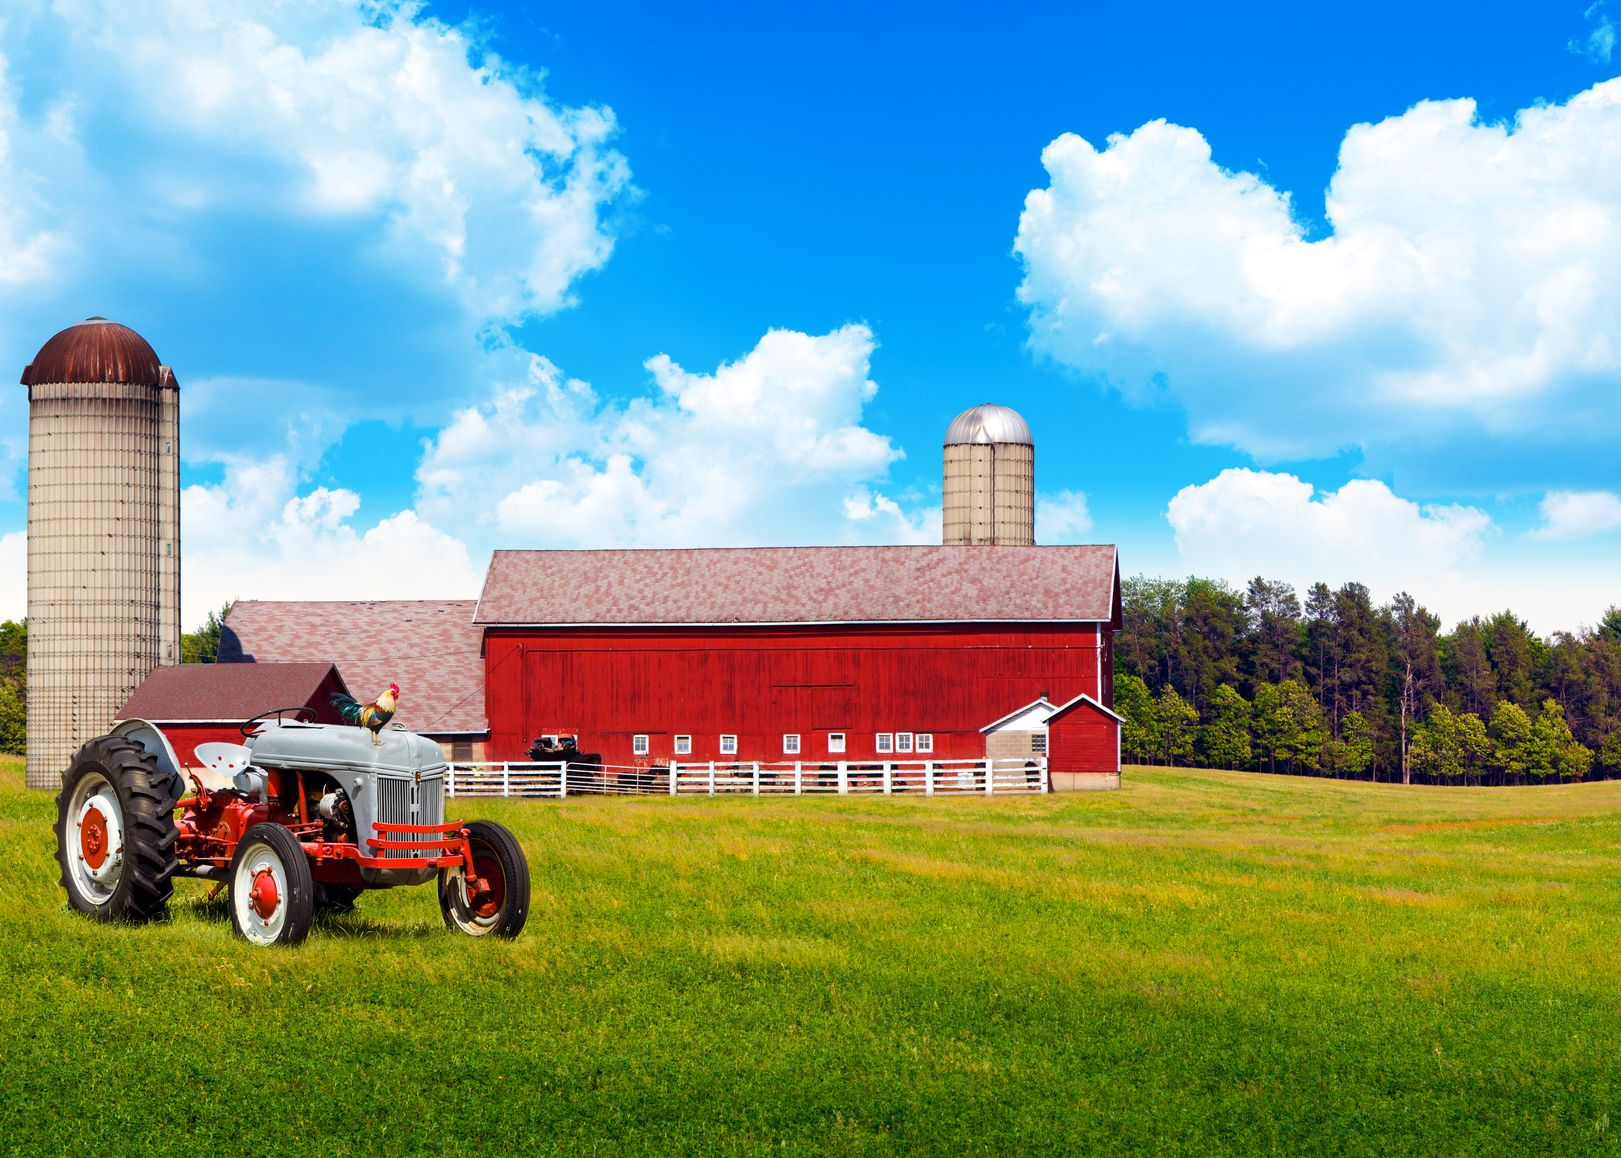 Turlock, Pleasanton, CA. Farm & Ranch Insurance